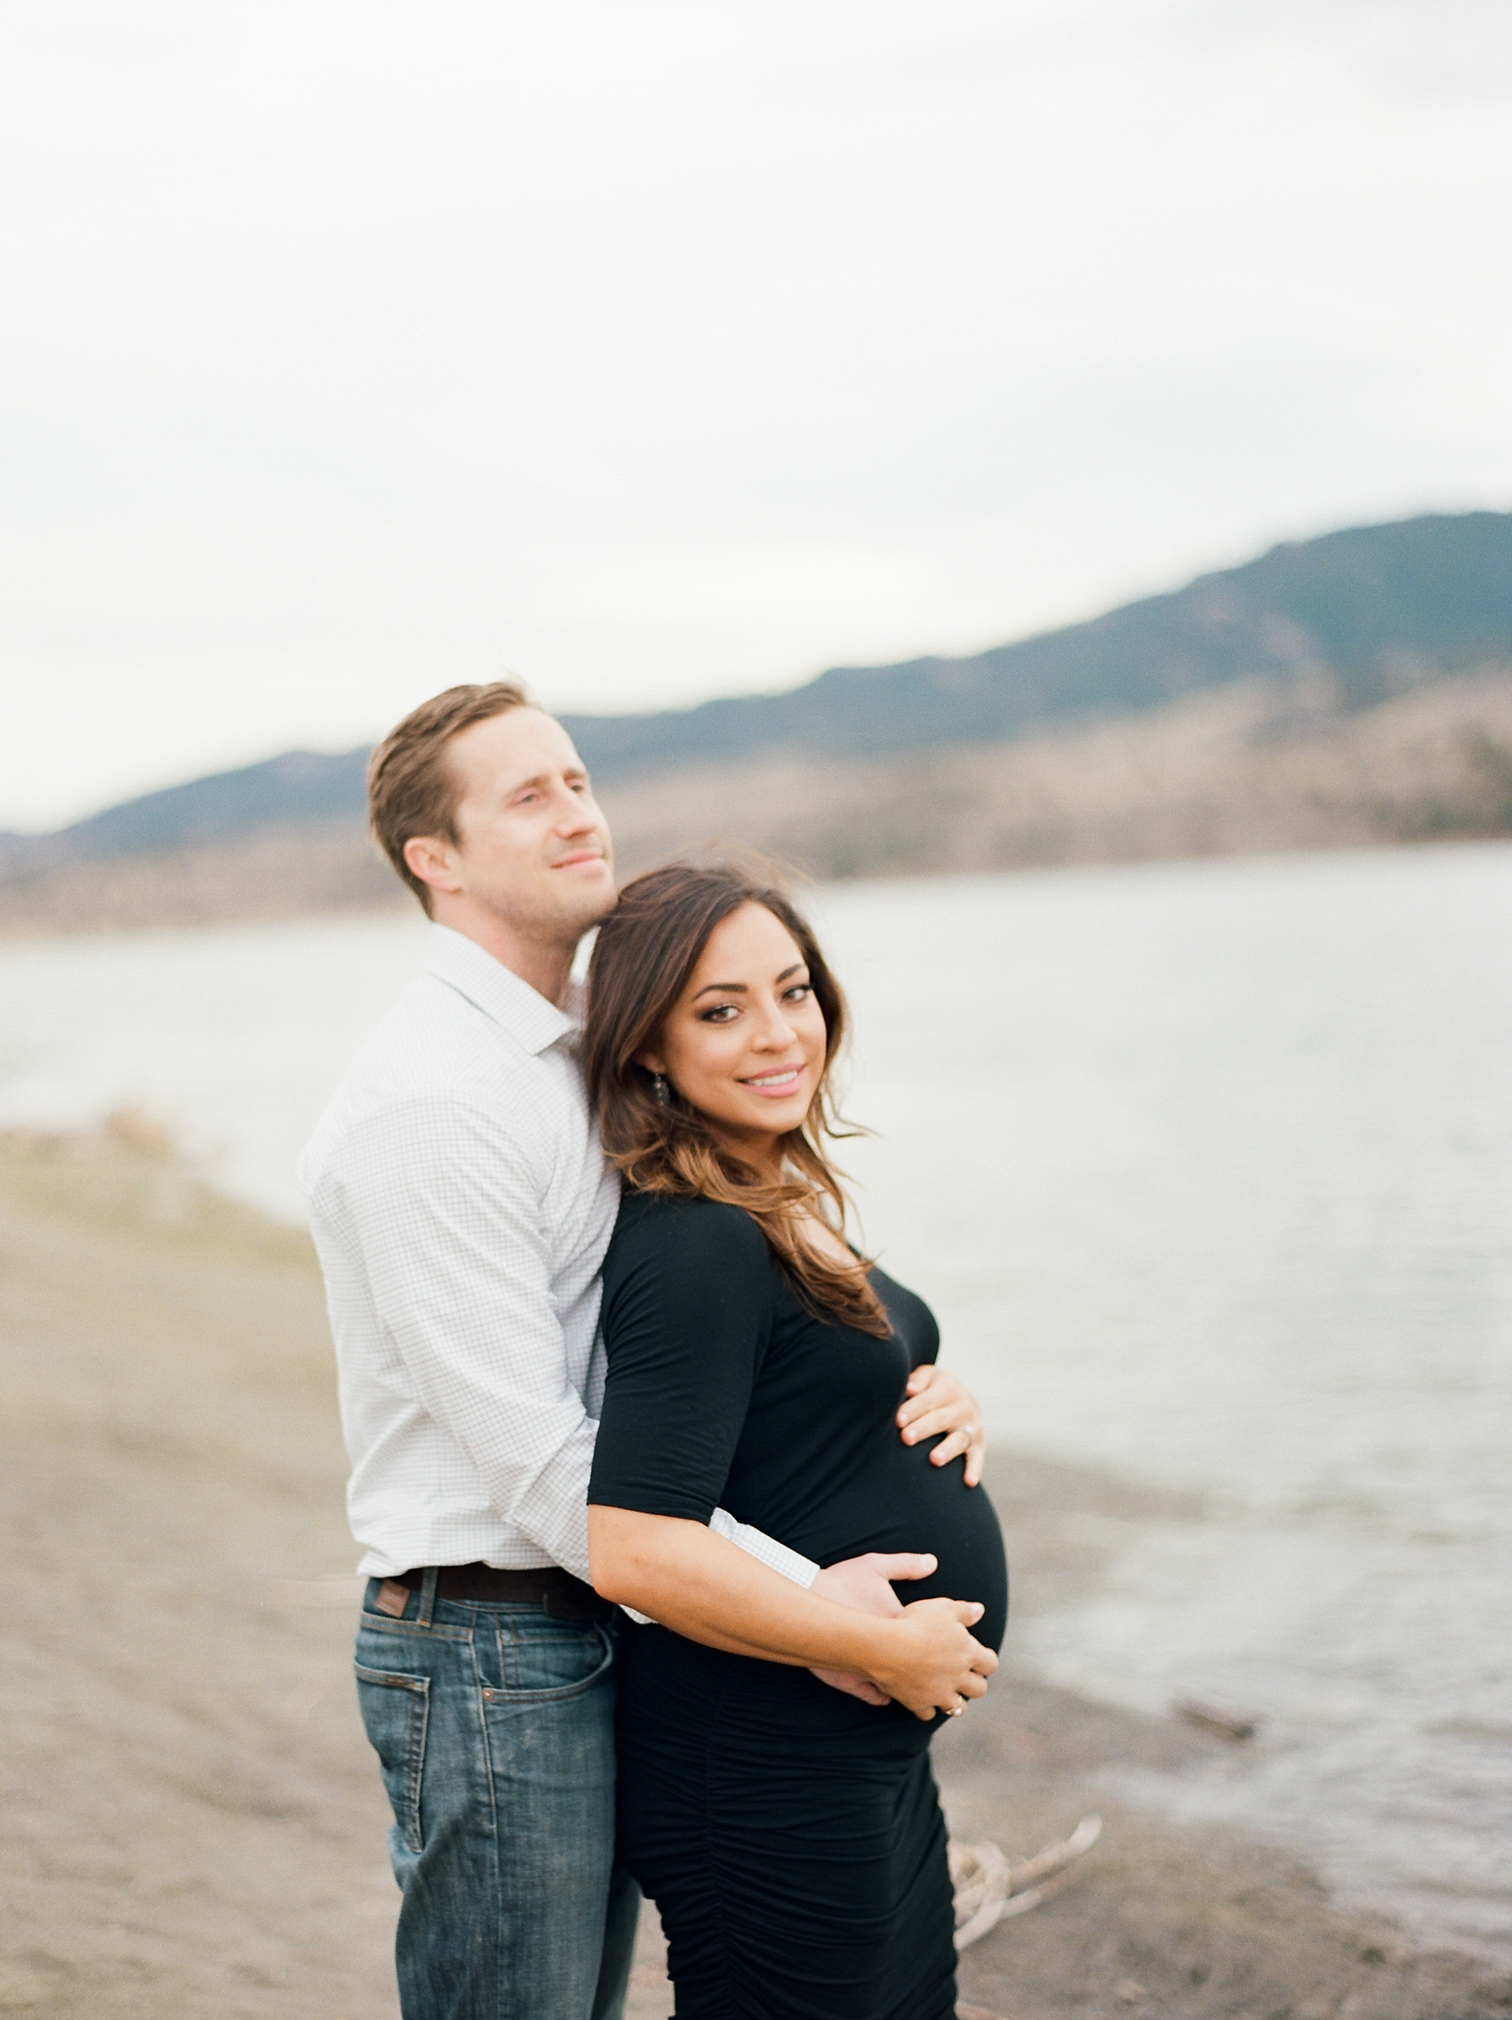 Maternity Photos Near Water, Fort Collins Maternity Photographer